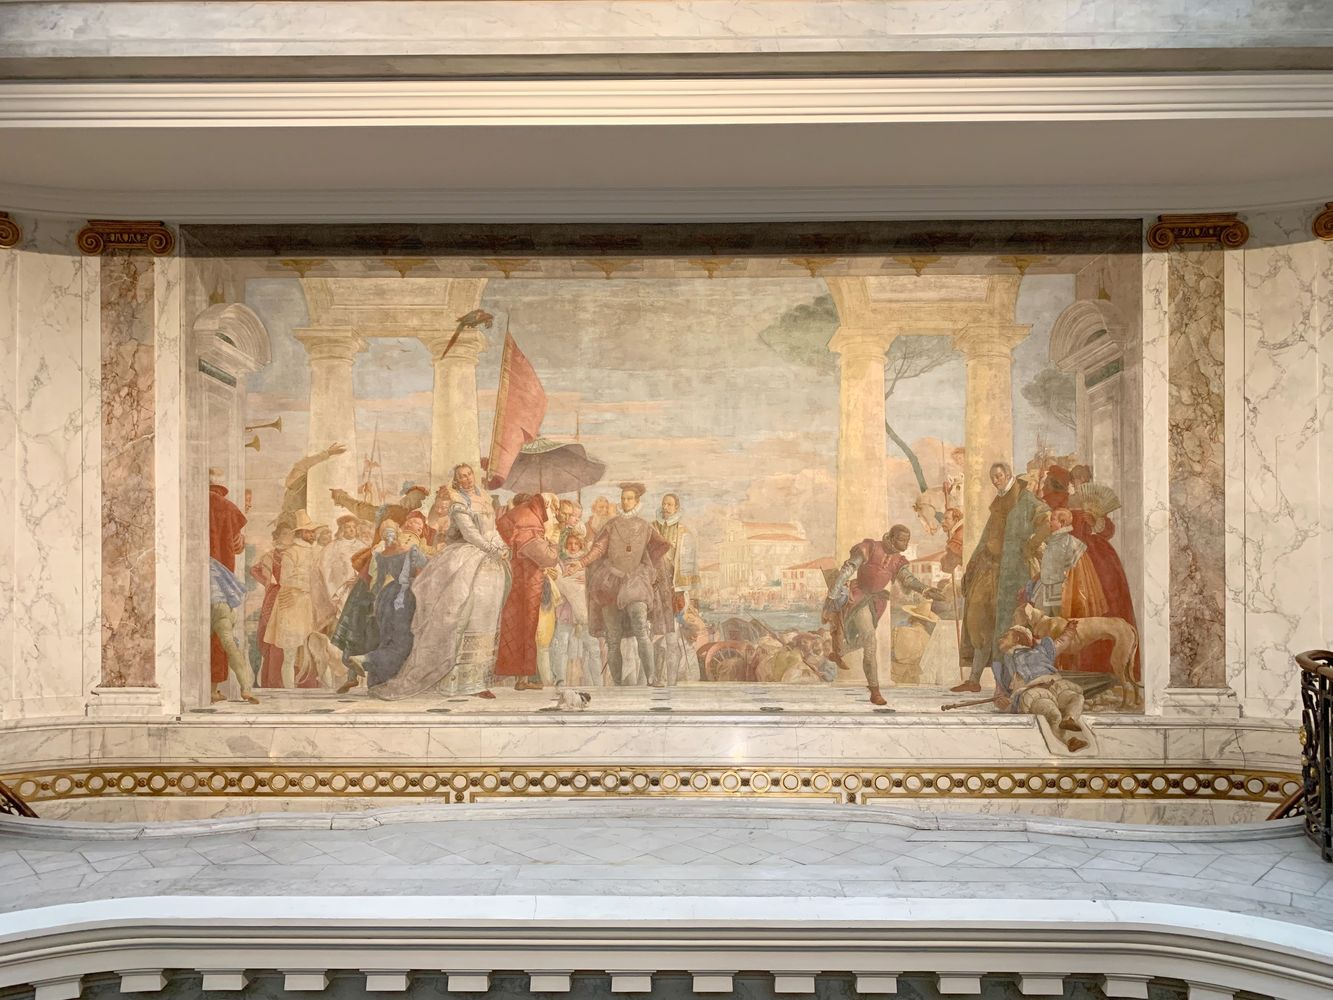 HENRI III BEING WELCOMED TO THE CONTARINI VILLA, Giambattista Tiepolo, 1745, Musee Jacquemart Andre